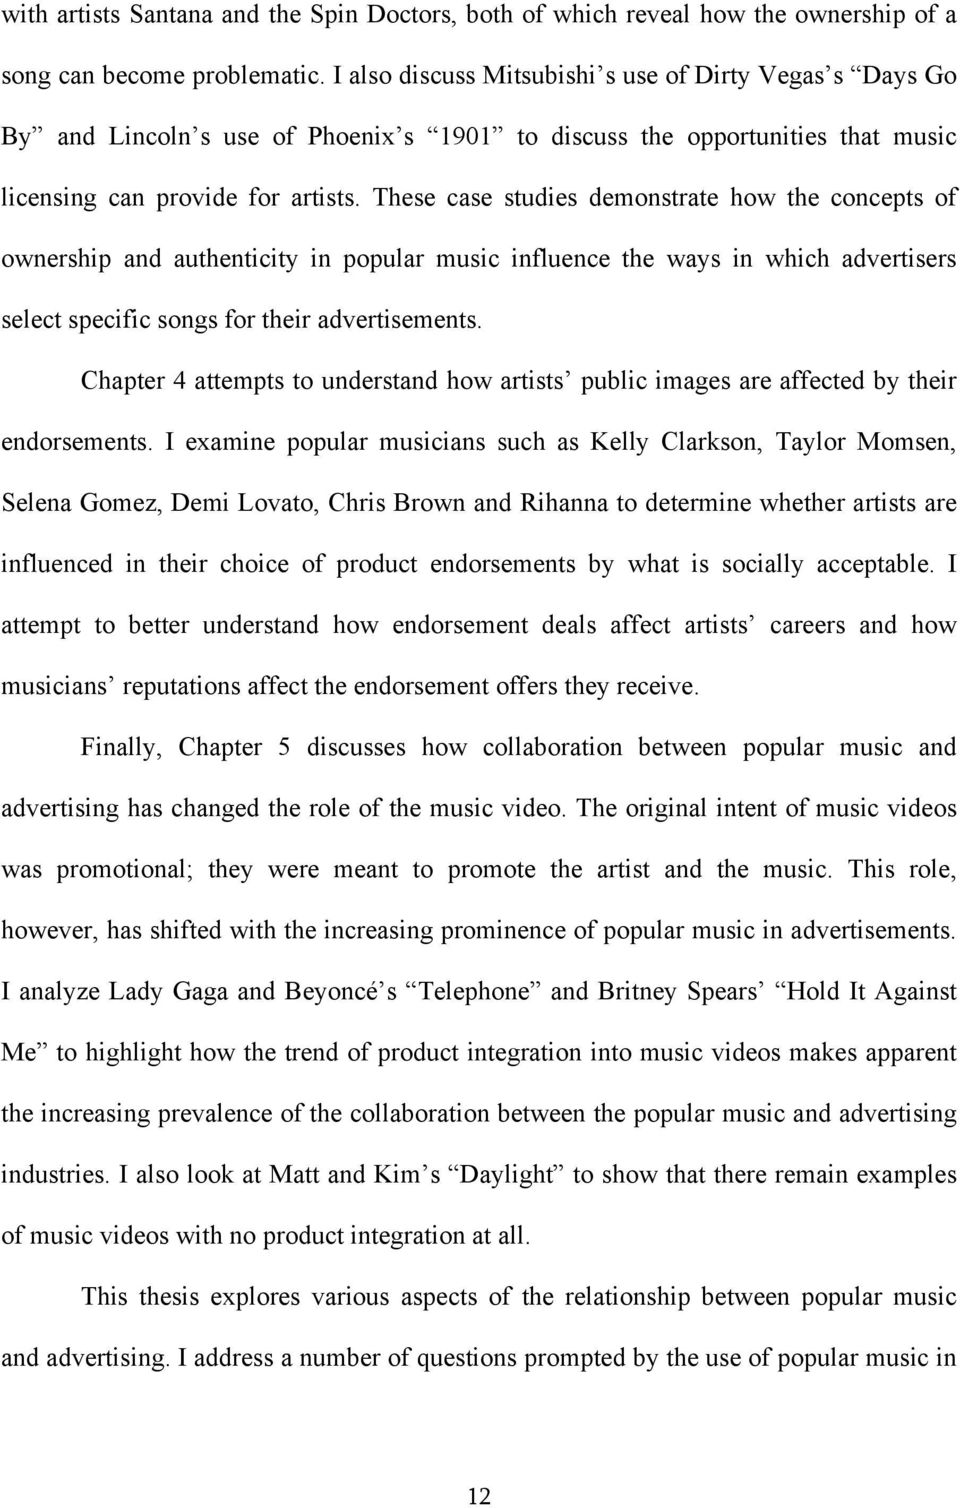 These case studies demonstrate how the concepts of ownership and authenticity in popular music influence the ways in which advertisers select specific songs for their advertisements.